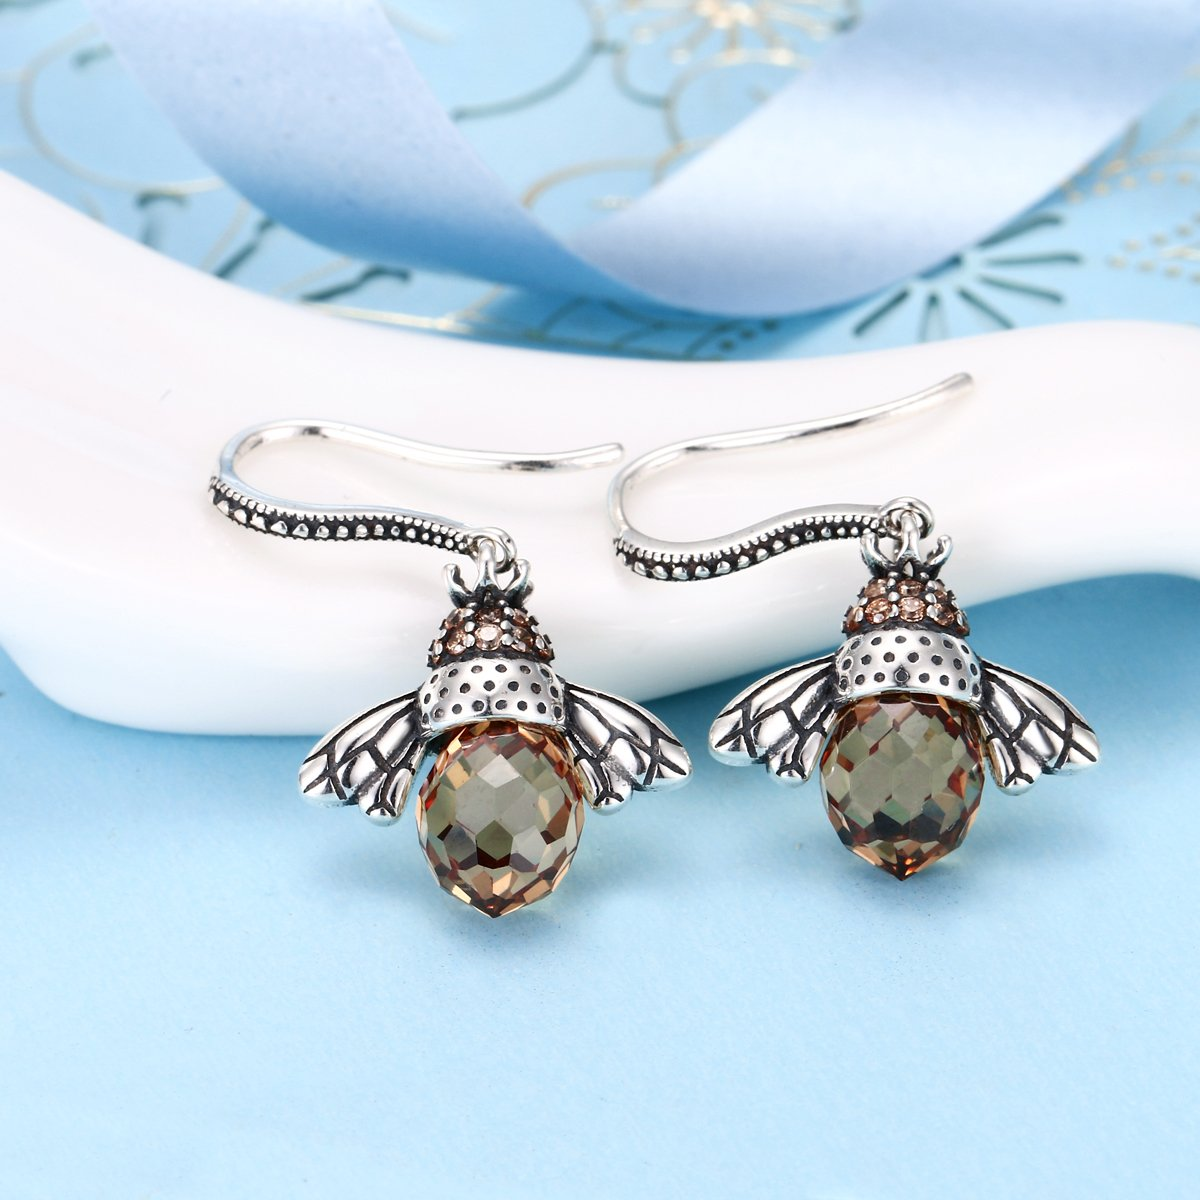 EleQueen 925 Sterling Silver Vintage Inspired Brown Crystals Queen Bee Earrings Jewelry For Women by EleQueen (Image #3)